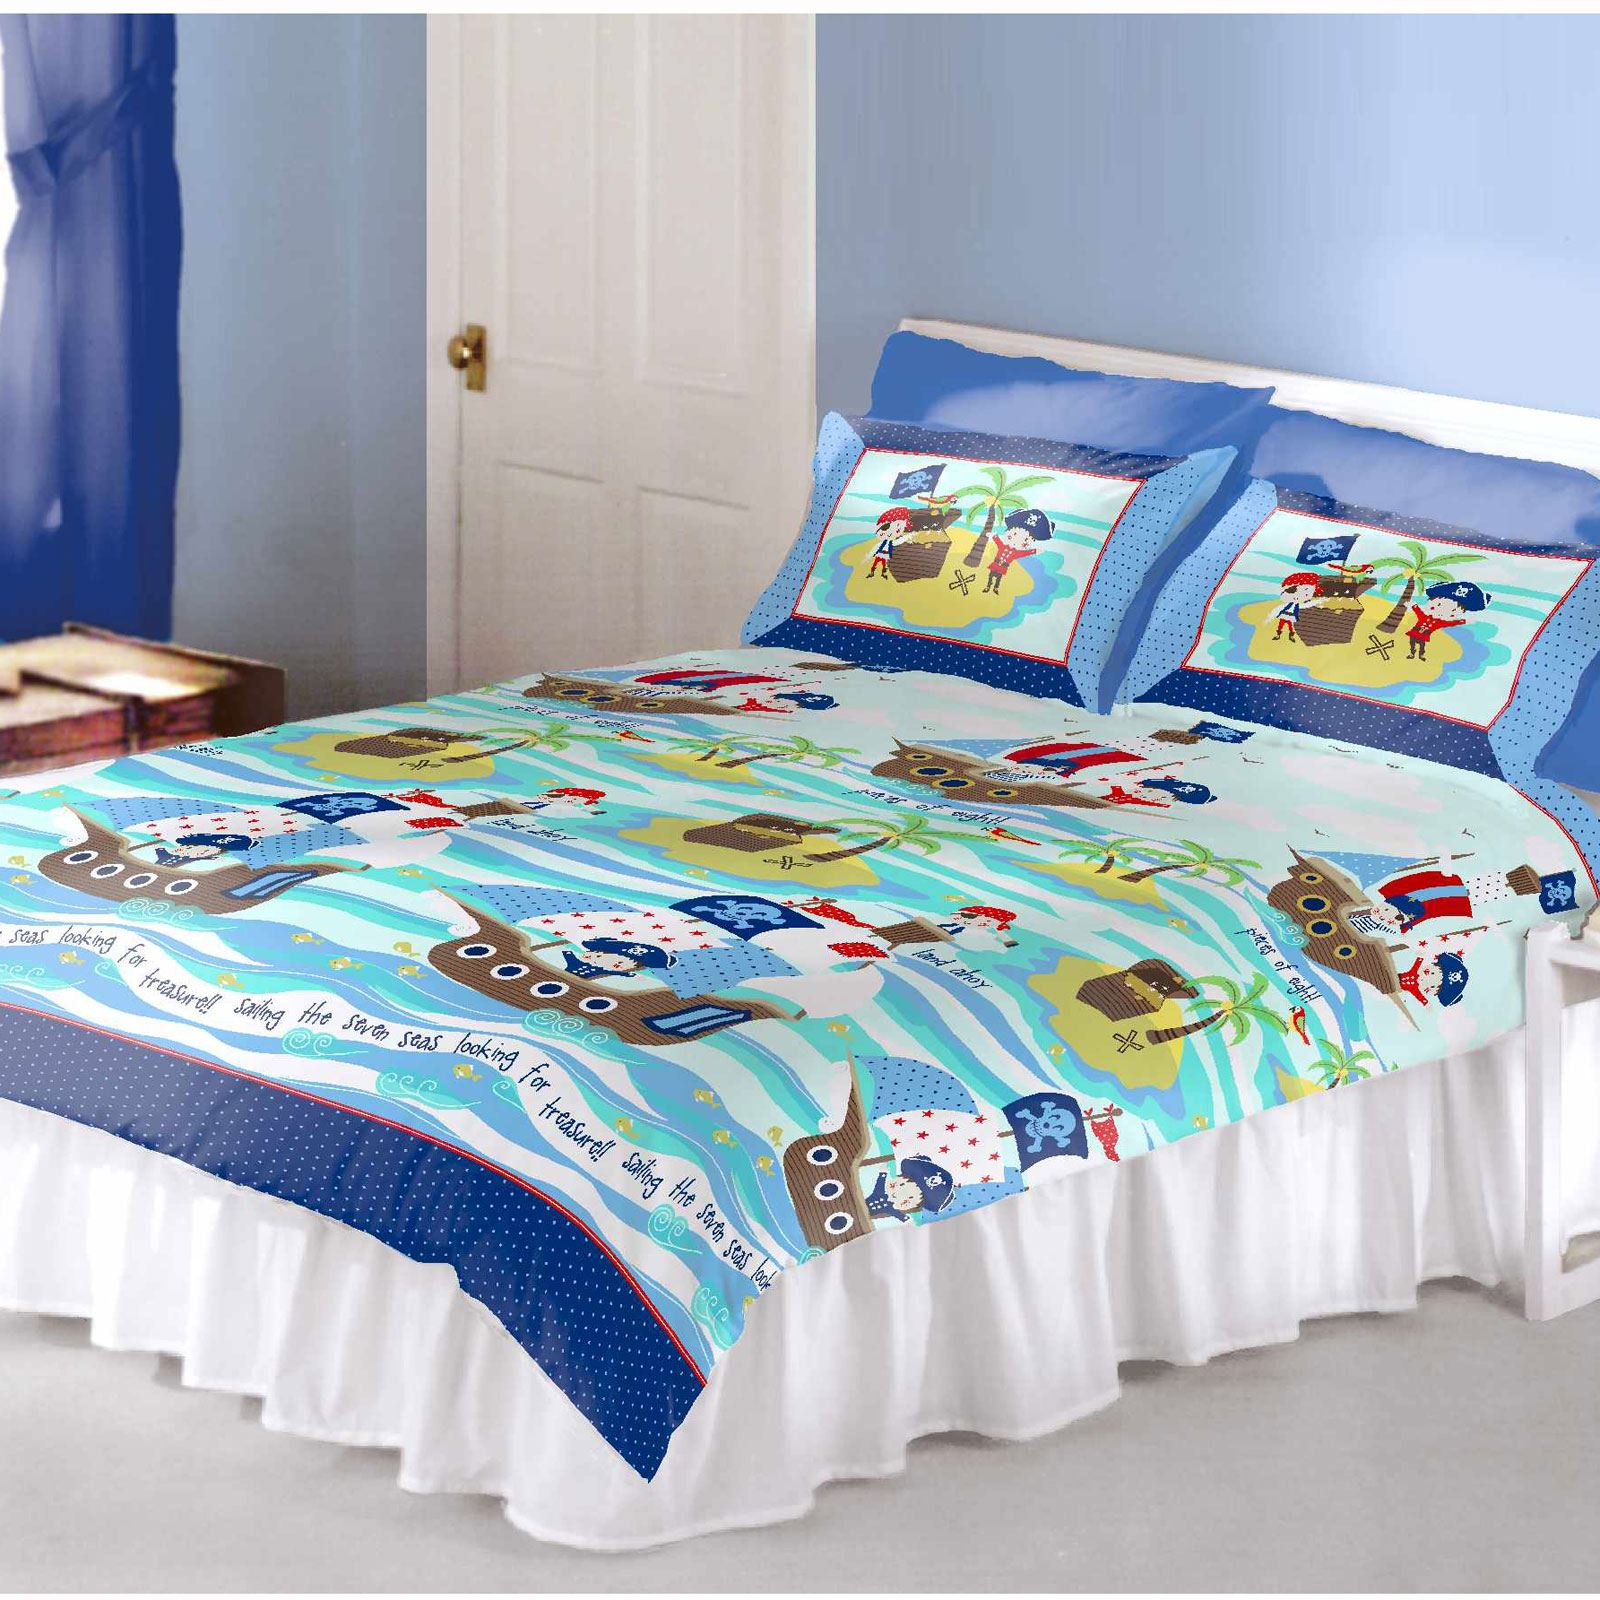 Double Doona Covers Boys Girls Double Double Duvet Cover Sets Elephant T Rex